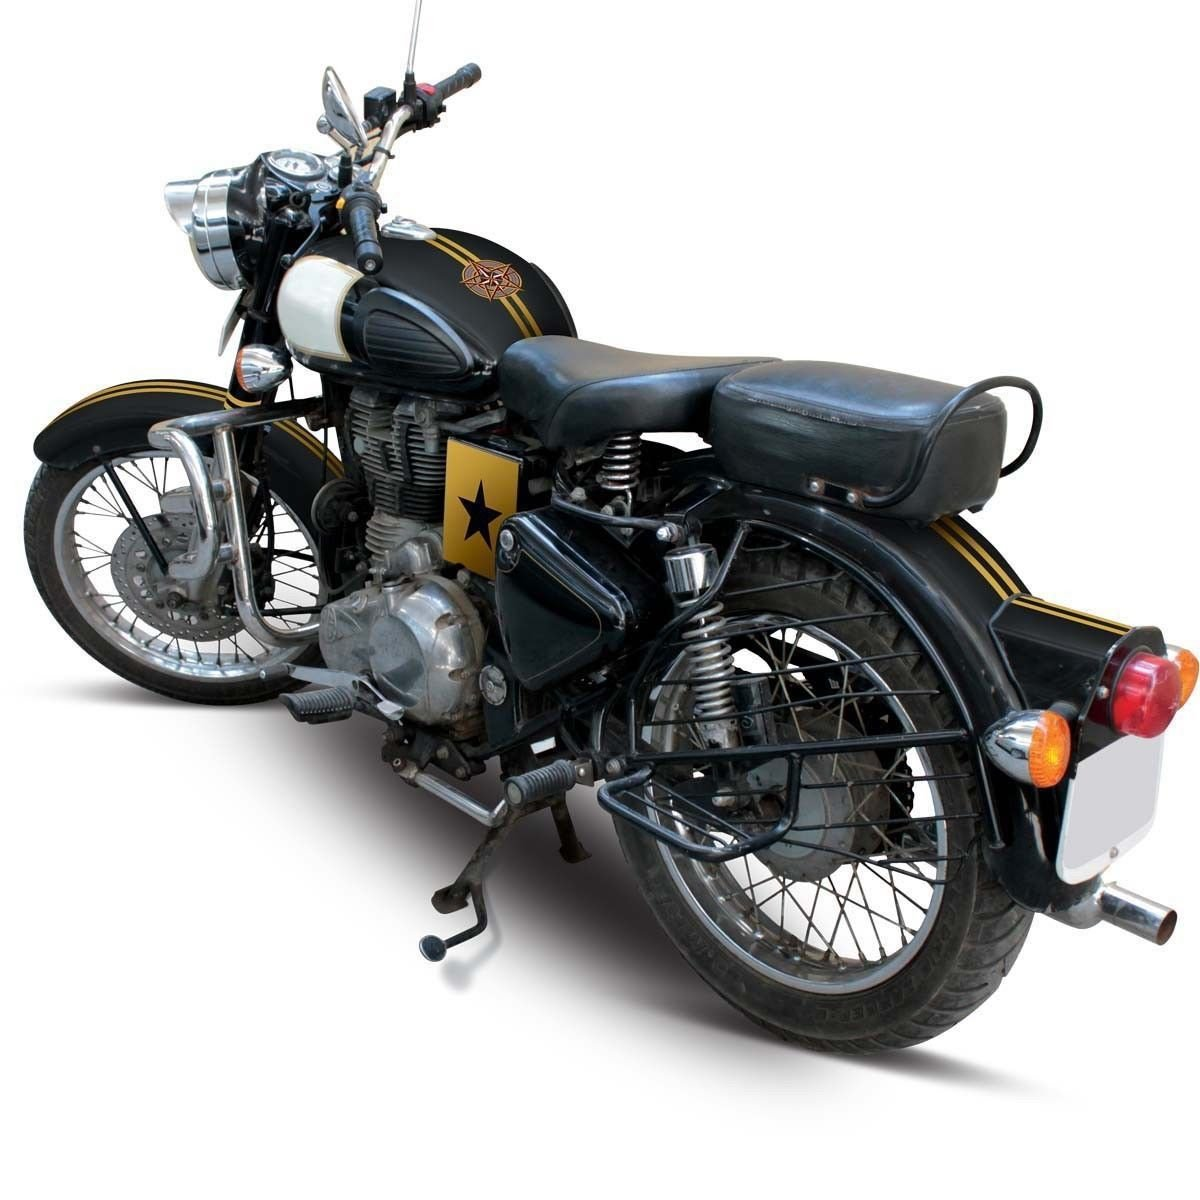 Delhi traderss explorer for royal enfield classic 350 bike sticker bullet sticker gold amazon in car motorbike